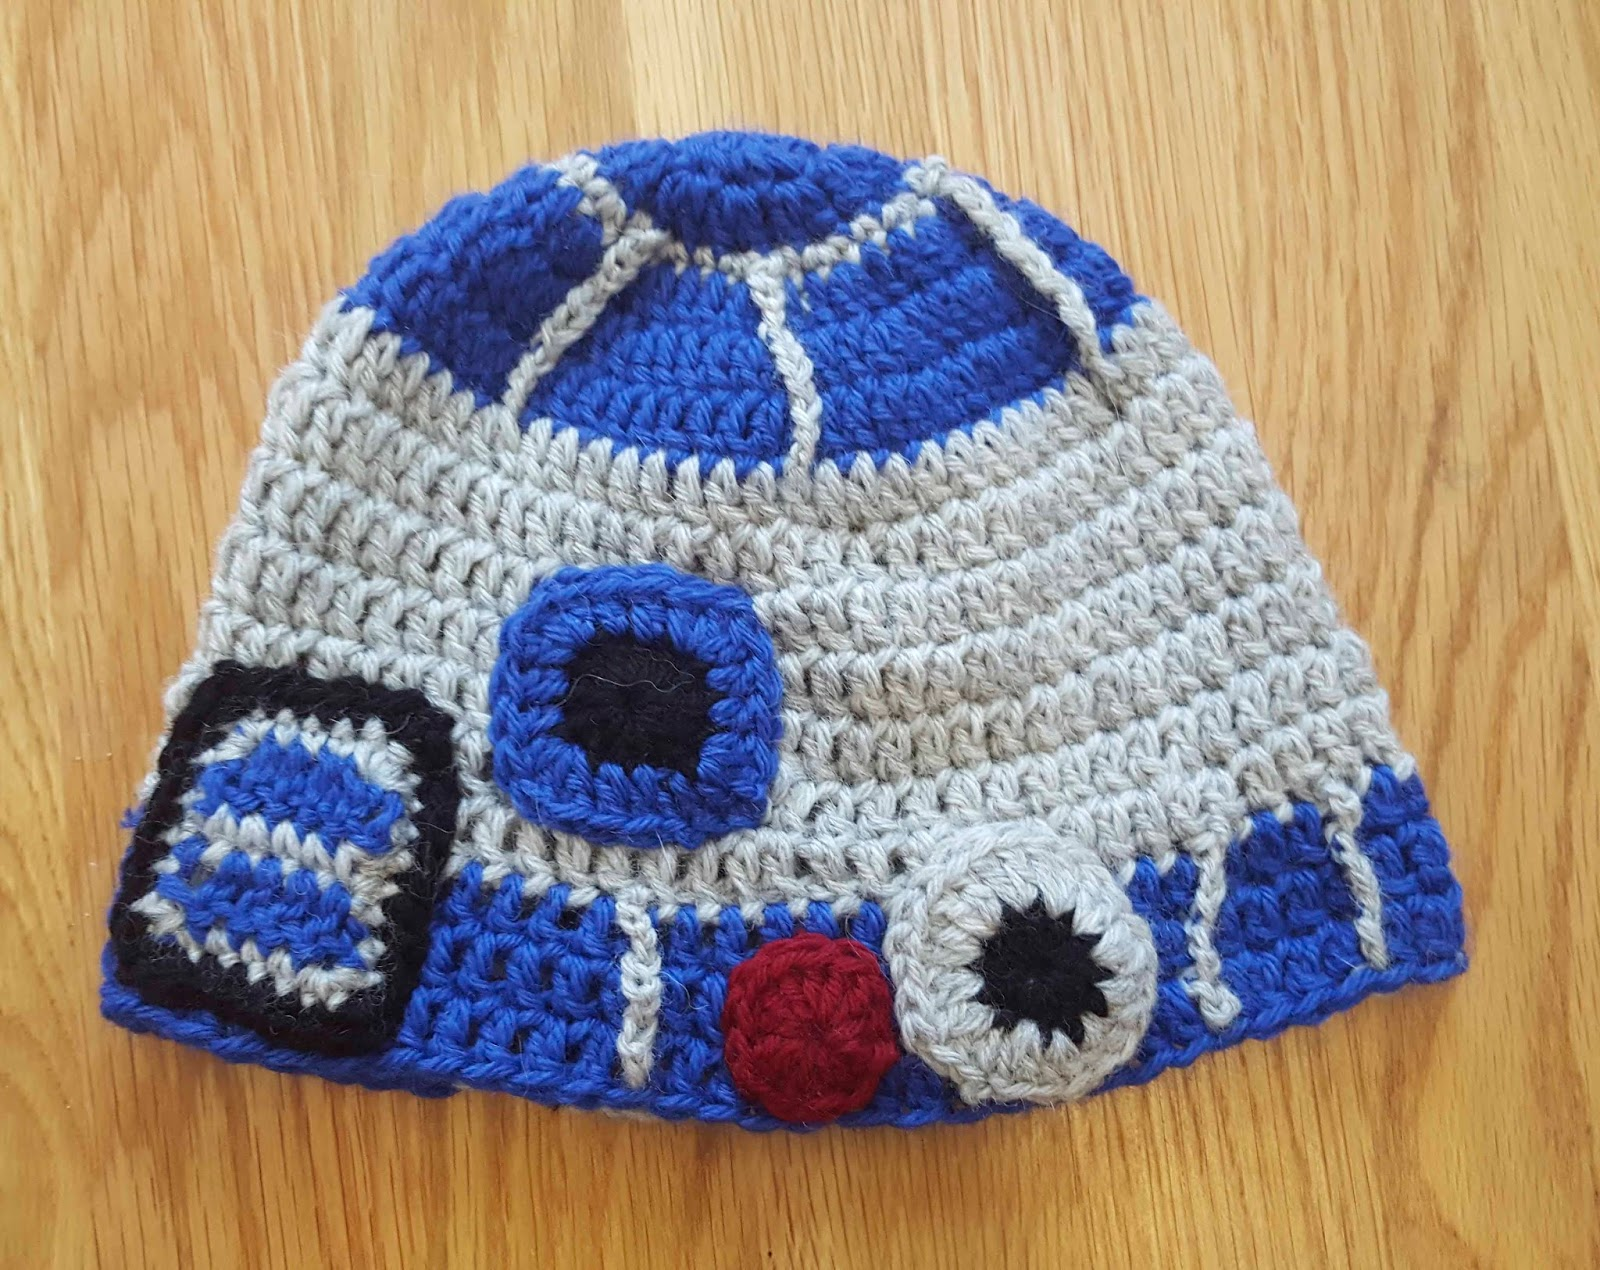 Knitting Pattern For R2d2 Hat : ChemKnits: A Crochet R2-D2 Hat